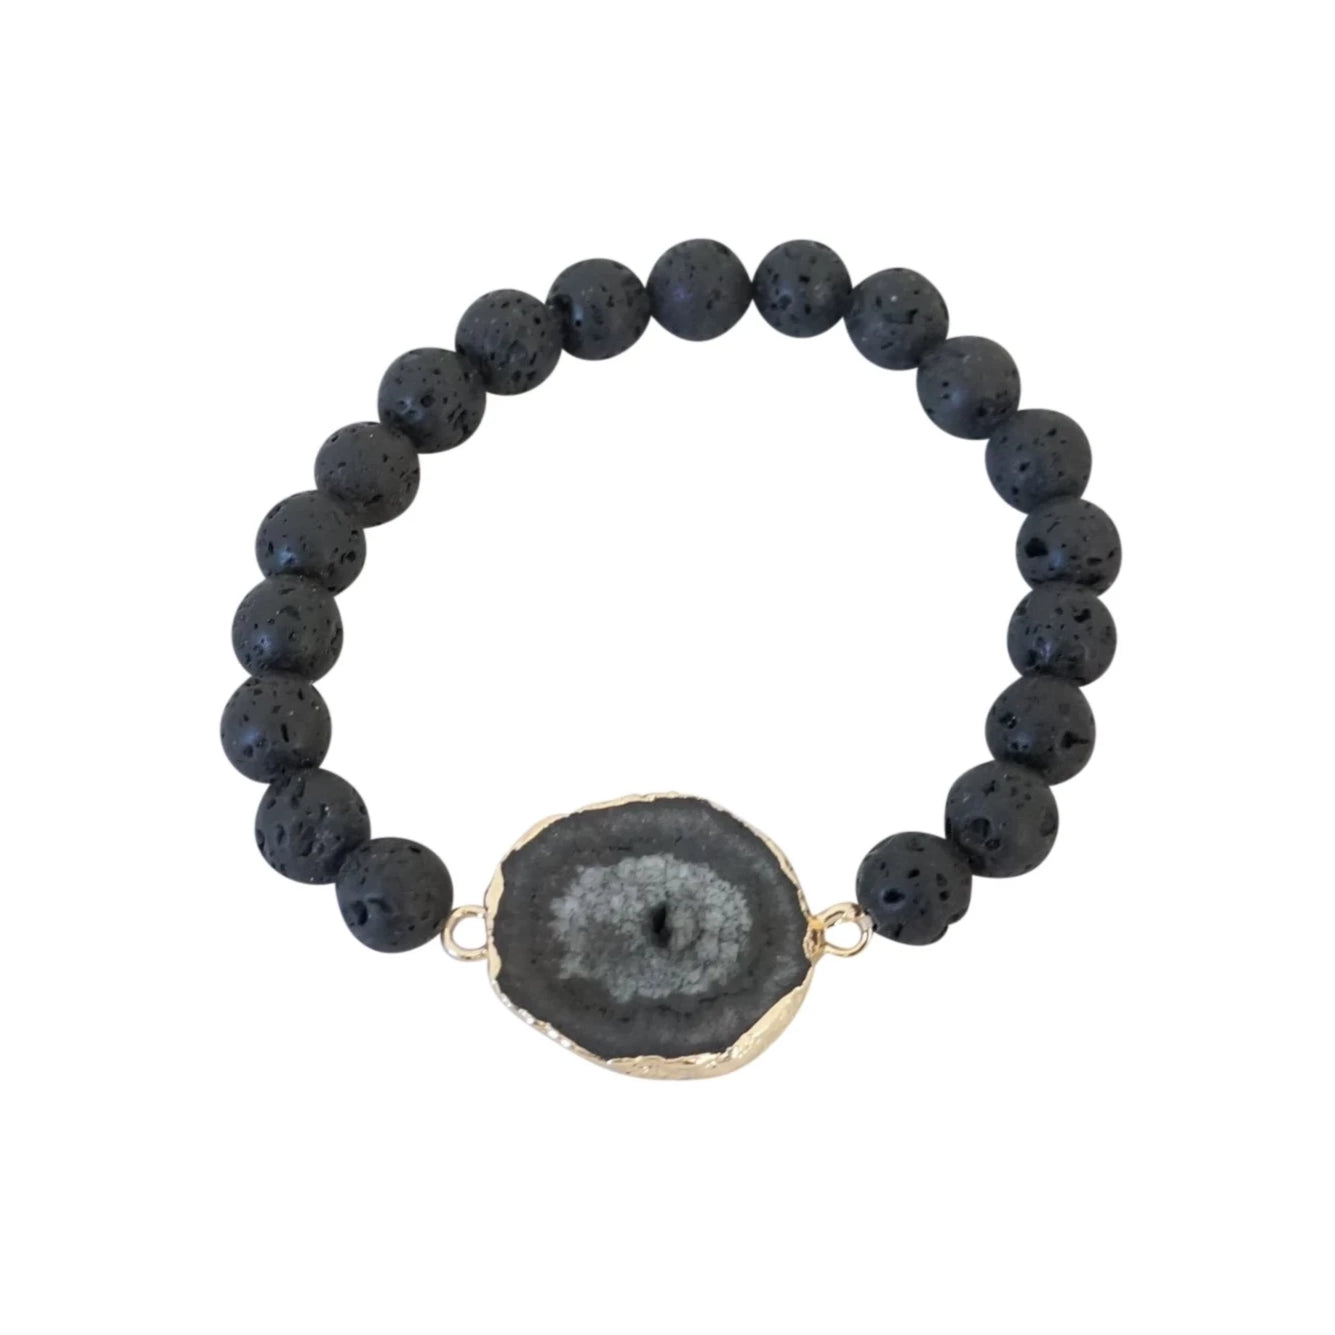 Essential Oil Power Bracelet - Carolyn Hearn Designs